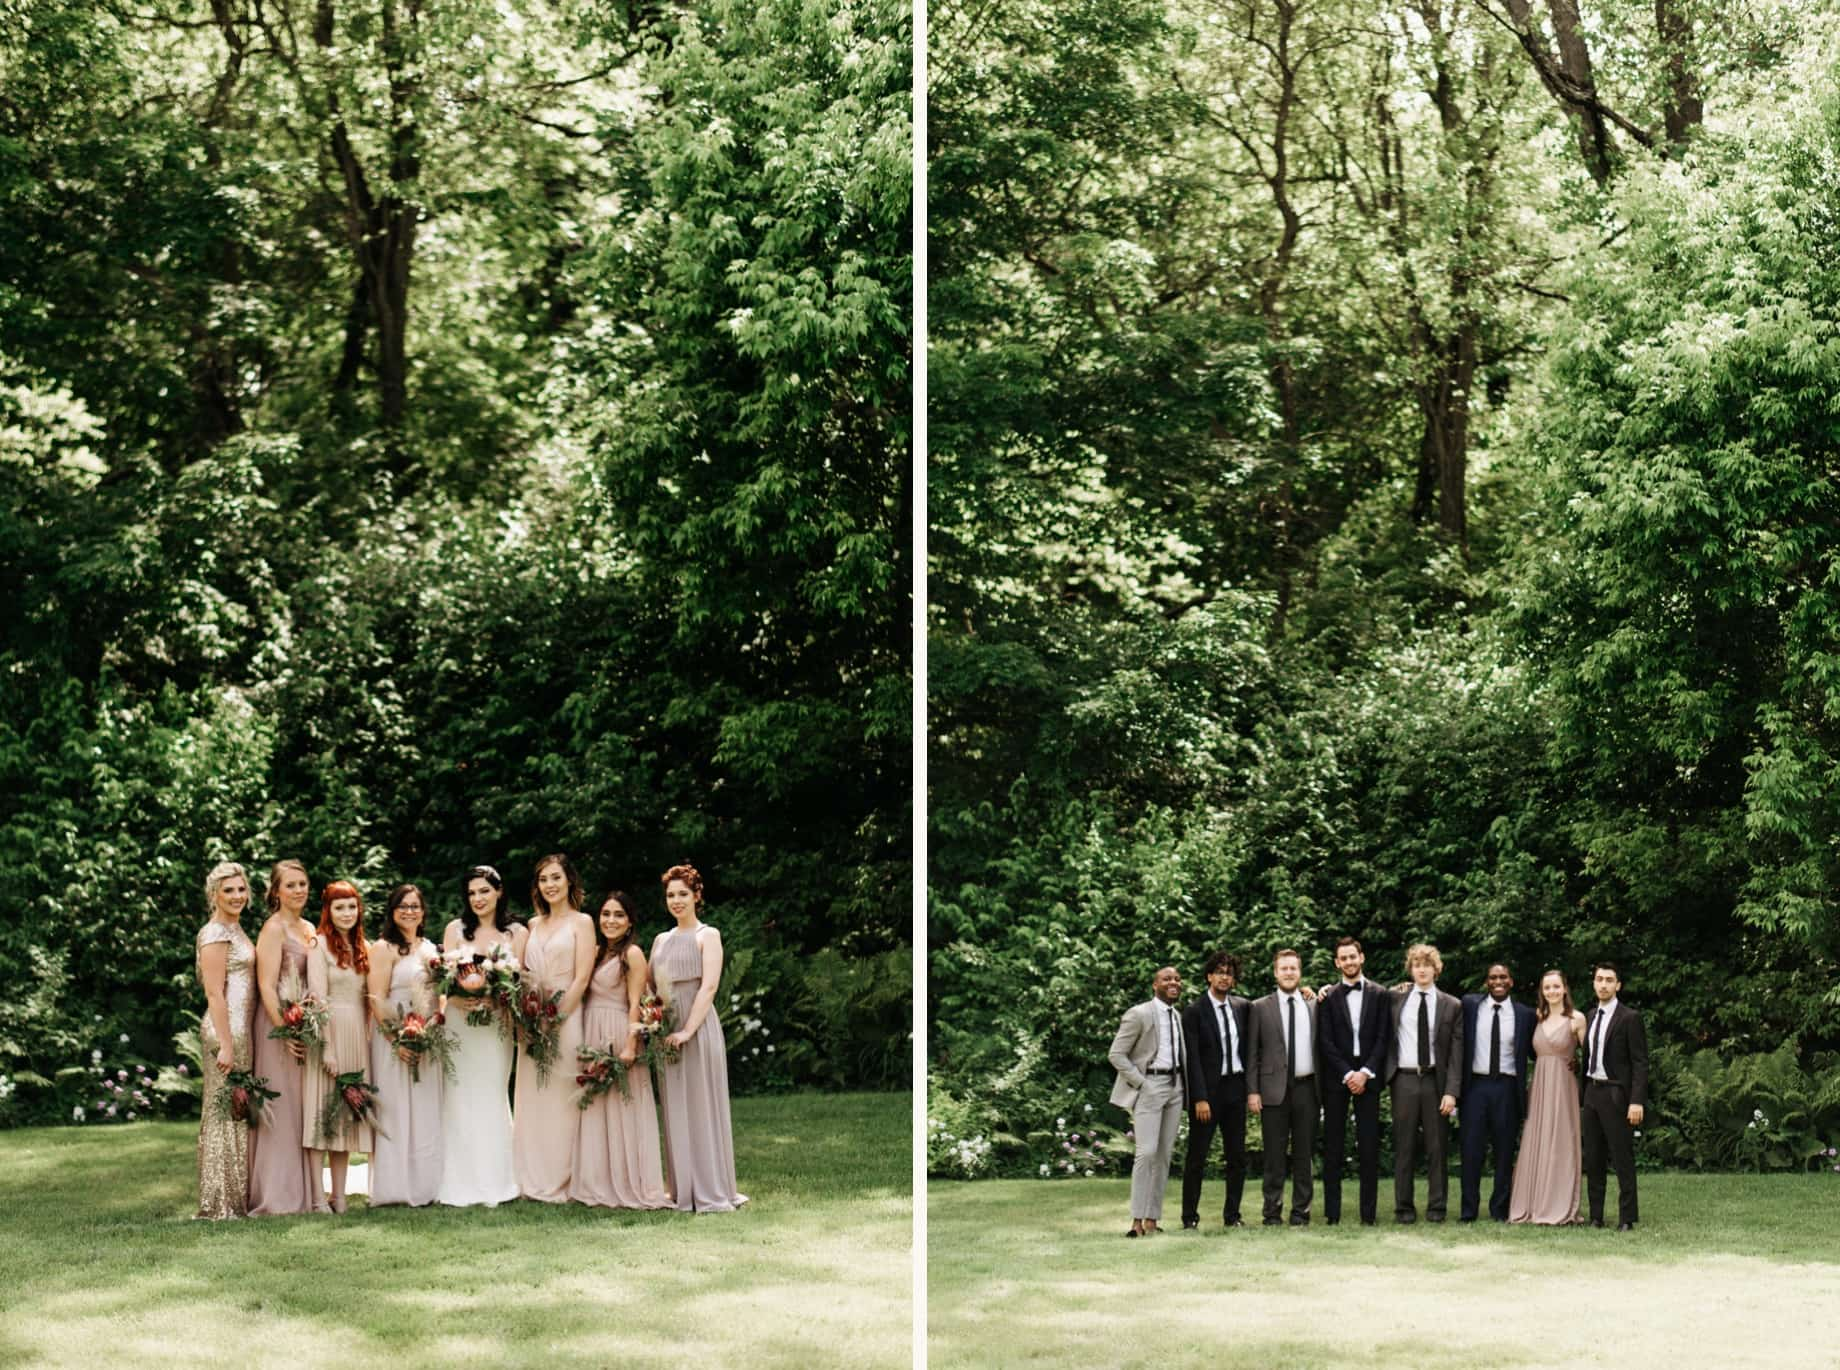 wedding party in shades of blush and gray